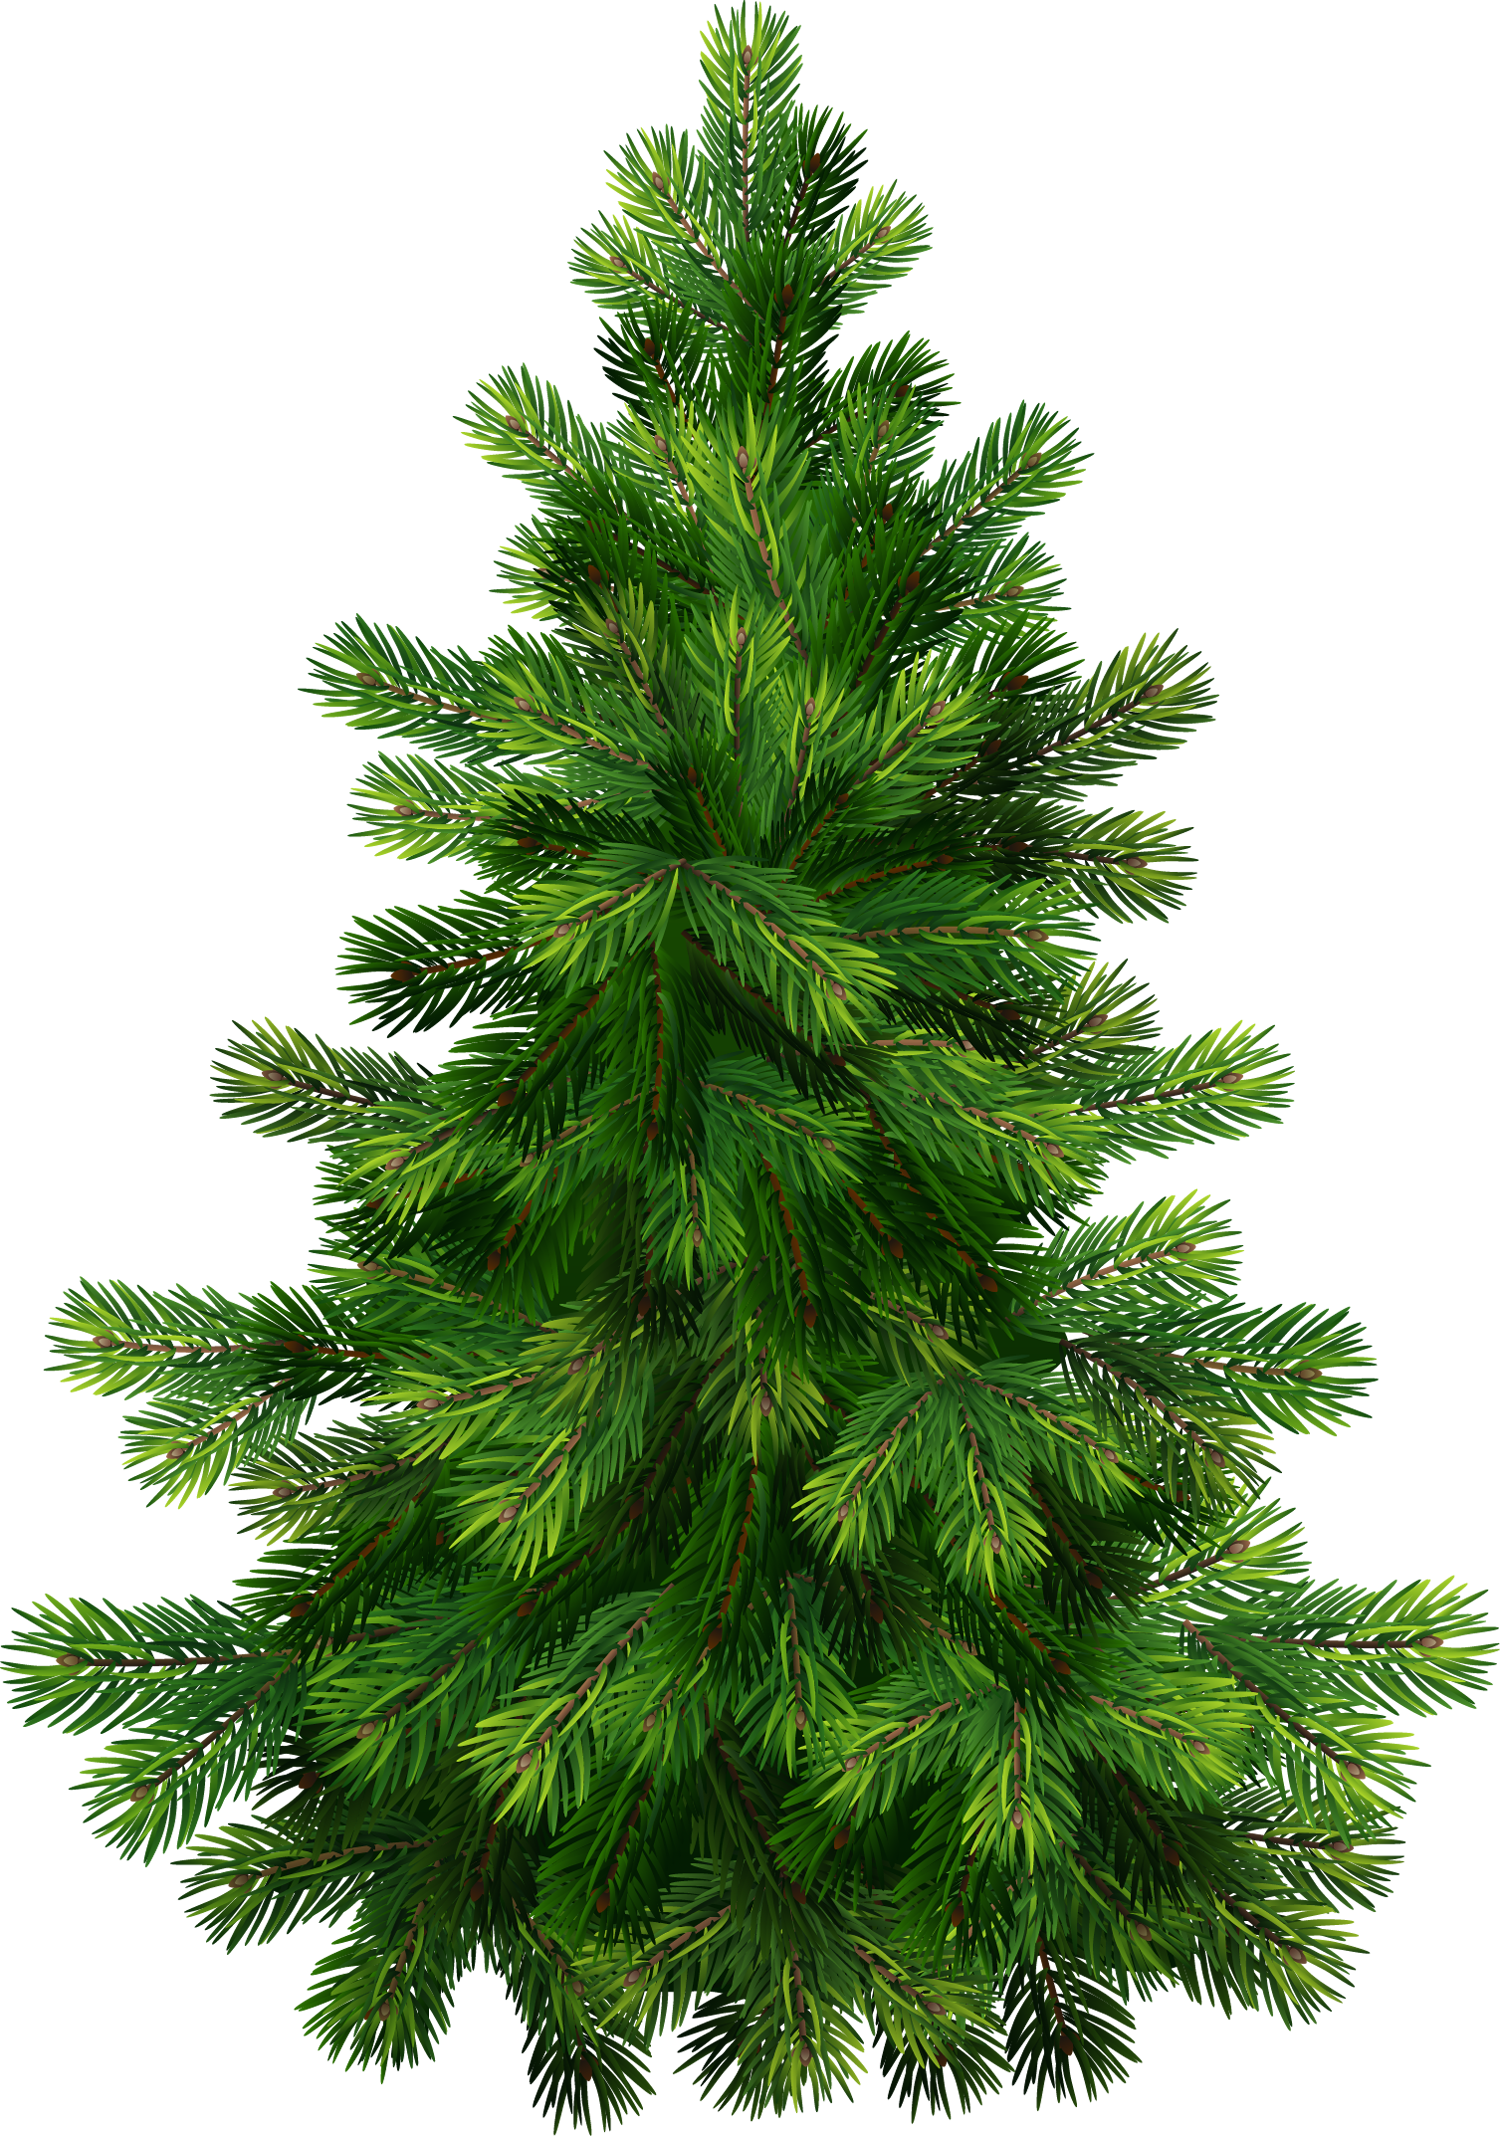 Clip art pine tree free clipart images image.